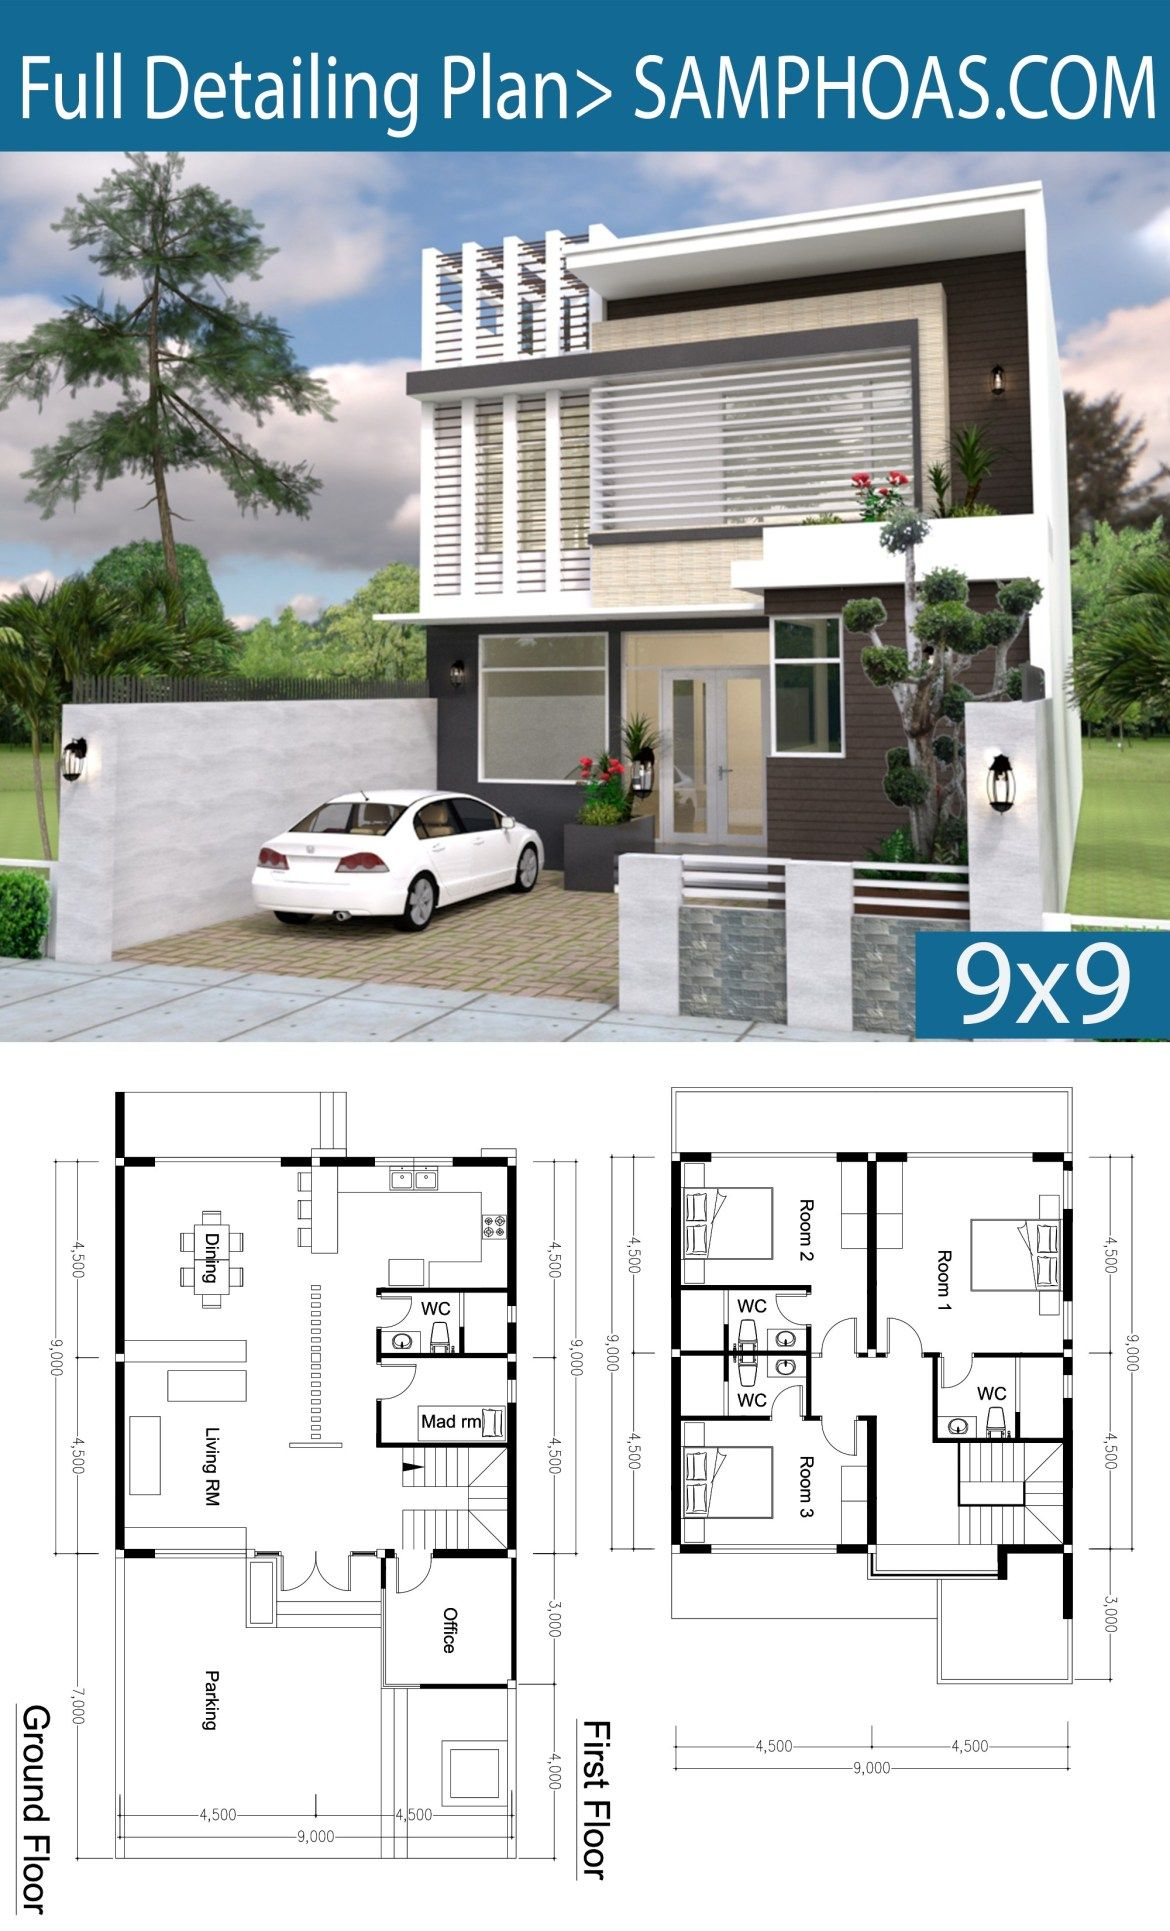 3 Bedroom Modern Home Plan 9x9m Samphoas Plansearch Modern House Plans Architectural House Plans Model House Plan